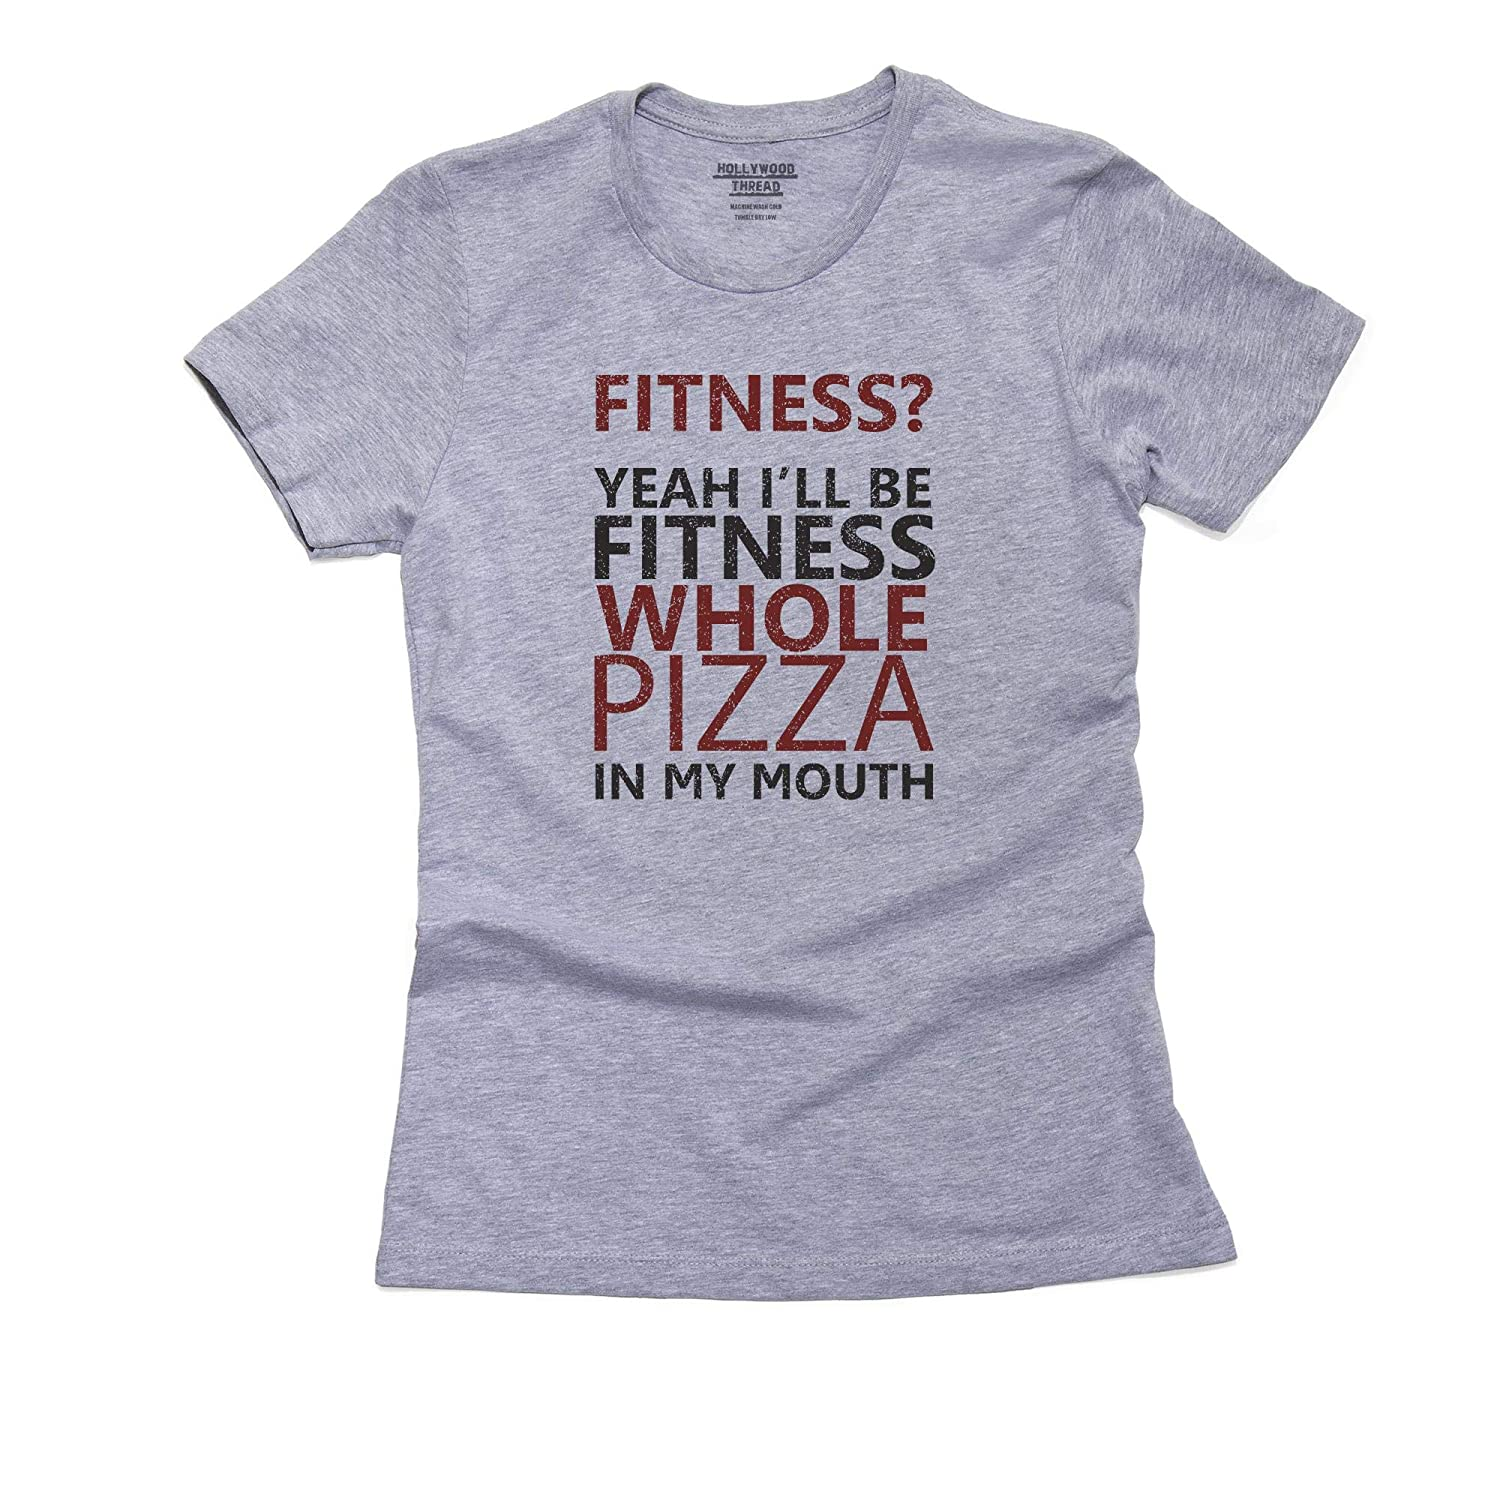 Hollywood Thread Funny Fitness? Yeah I'll Be Fitness Whole Pizza in My Mouth Women's Cotton T-Shirt